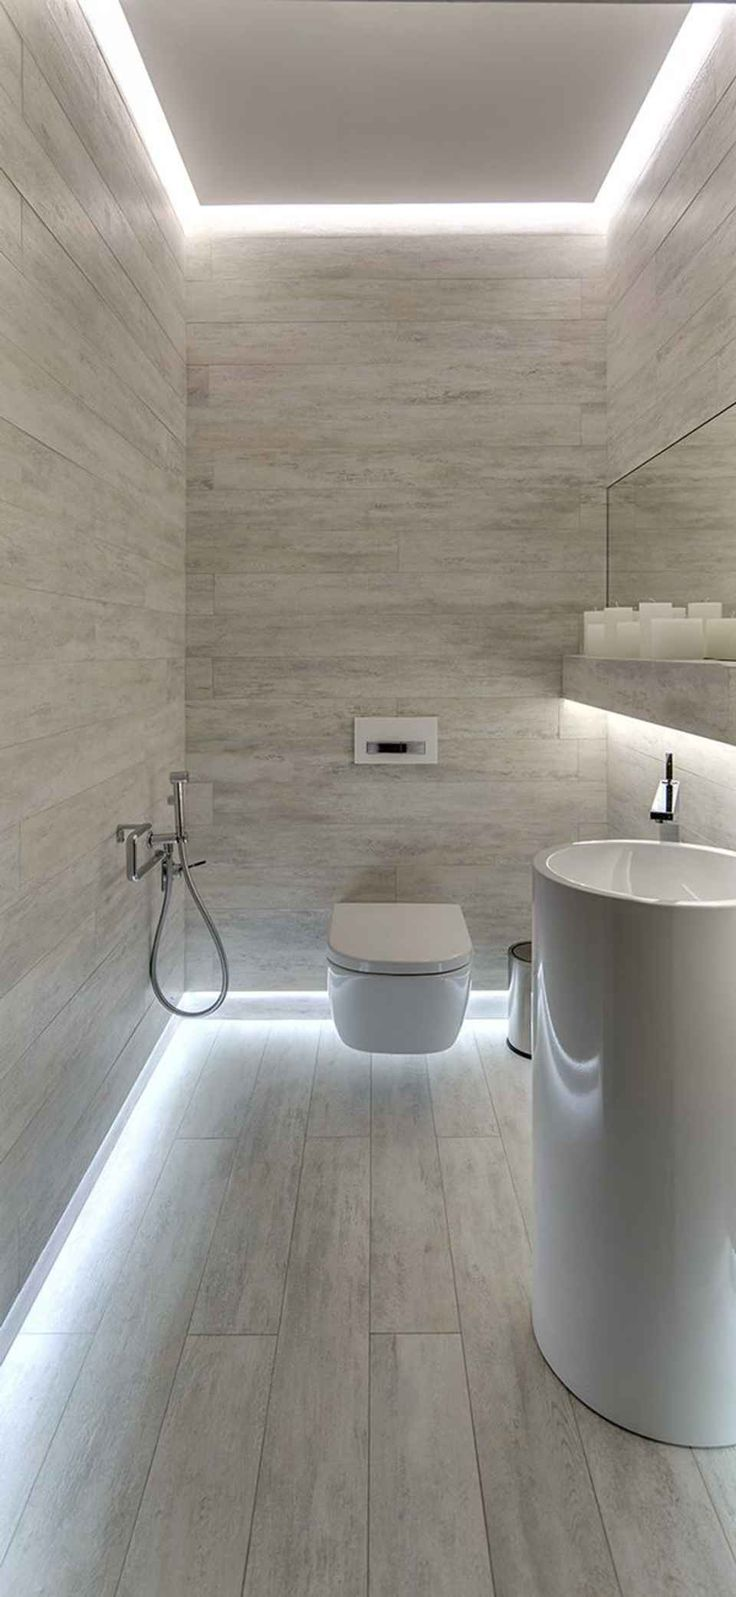 Here we showcase a a collection of perfectly minimal interior design examples for you to use as inspiration.Check out the previous post in the series: 30 Examples Of Minimal Interior Design #1210,000 people are receiving exclusive UltraLinx-related content from our monthly newsletter. Don't miss out, subscribe here.